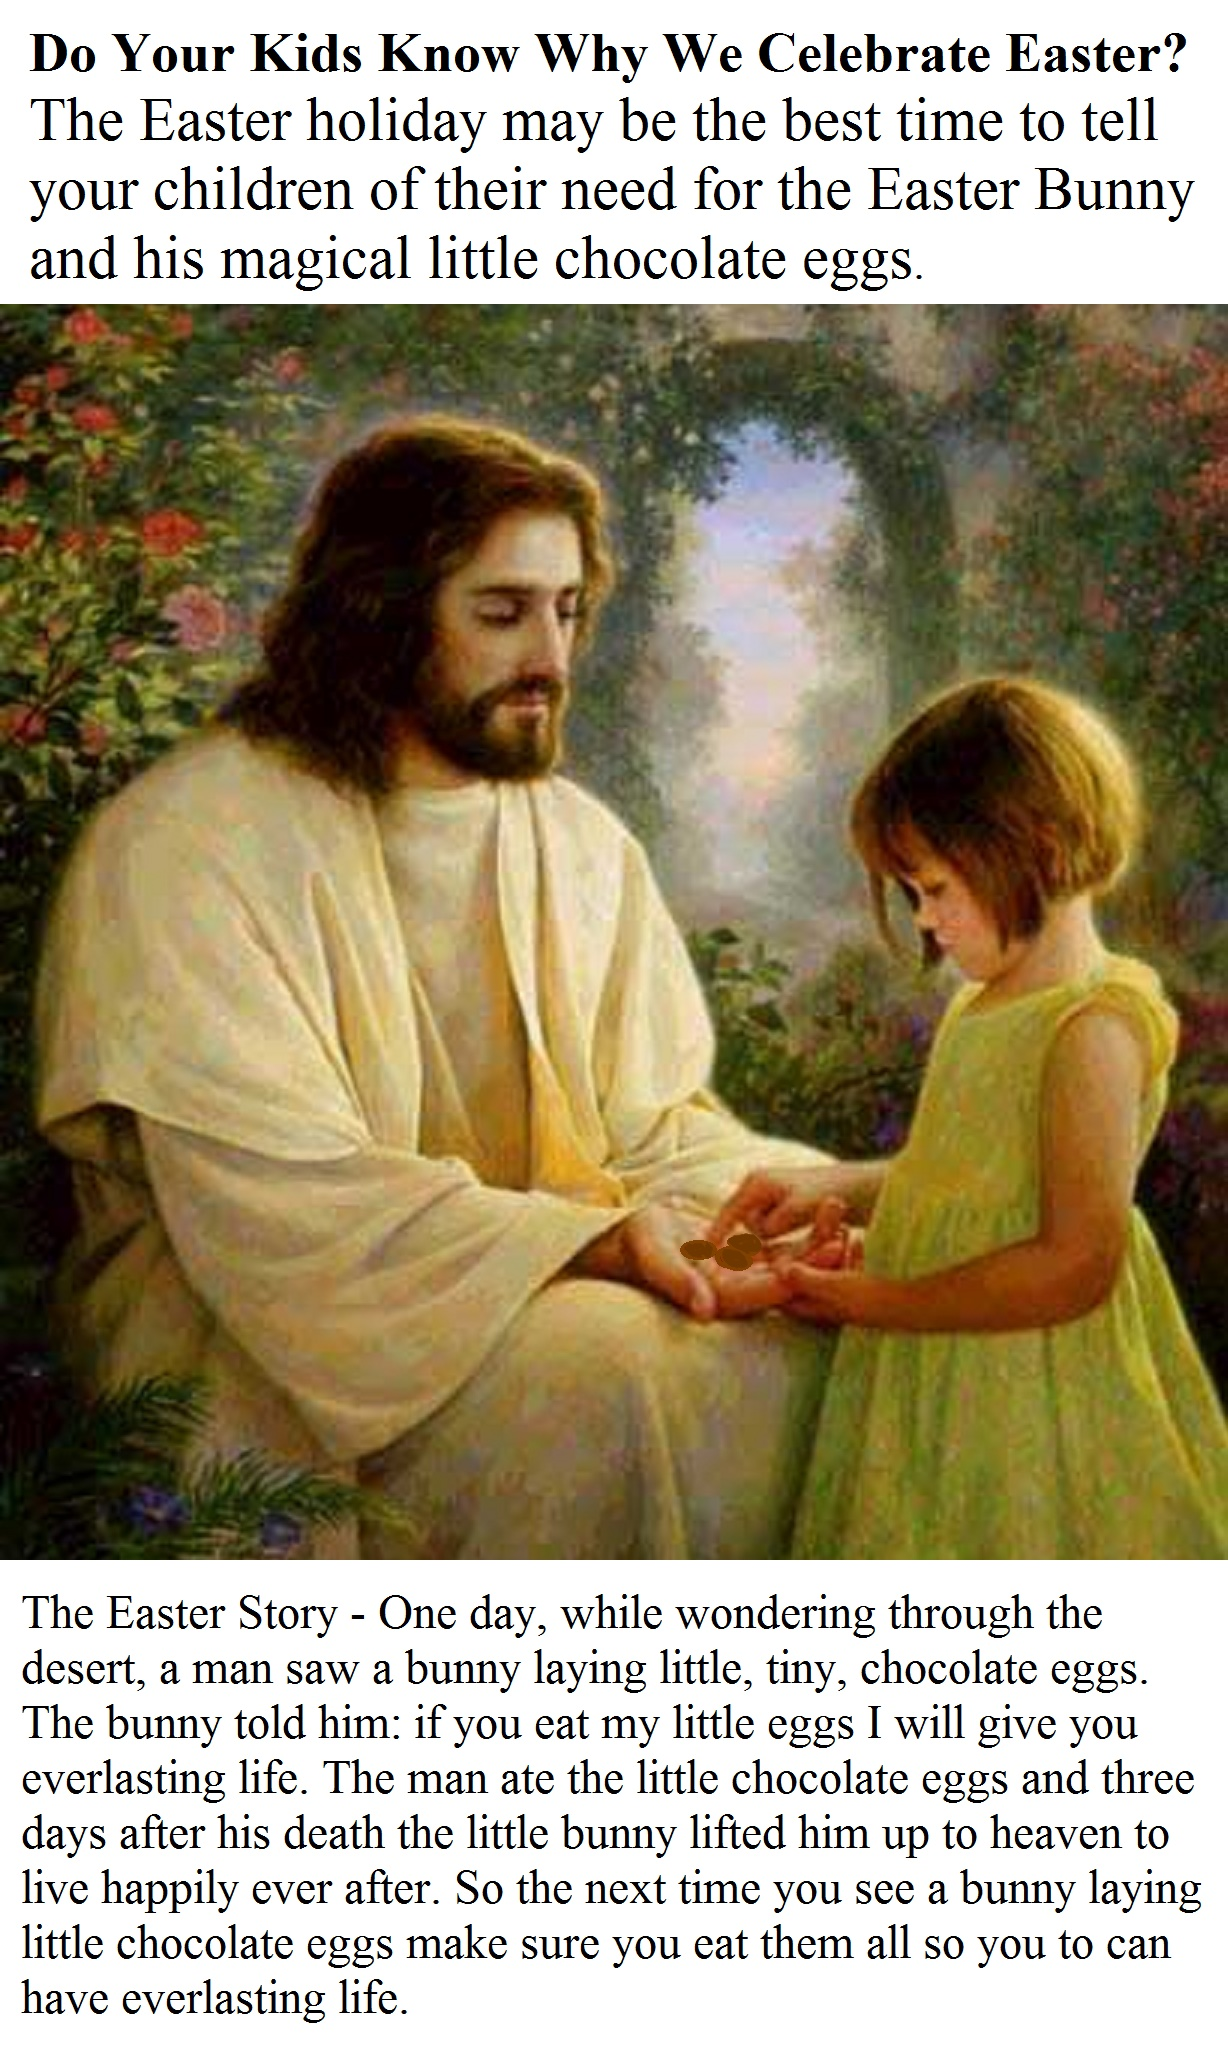 The Easter Story - One day, while wondering through the desert, a man saw a bunny laying little, tiny, chocolate eggs. The bunny told him: if you eat my little eggs I will give you everlasting life. The man ate the little chocolate eggs and three days after his death the little bunny lifted him up to heaven to live happily ever after. So the next time you see a bunny laying little chocolate eggs make sure you eat them all so you to can have everlasting life.